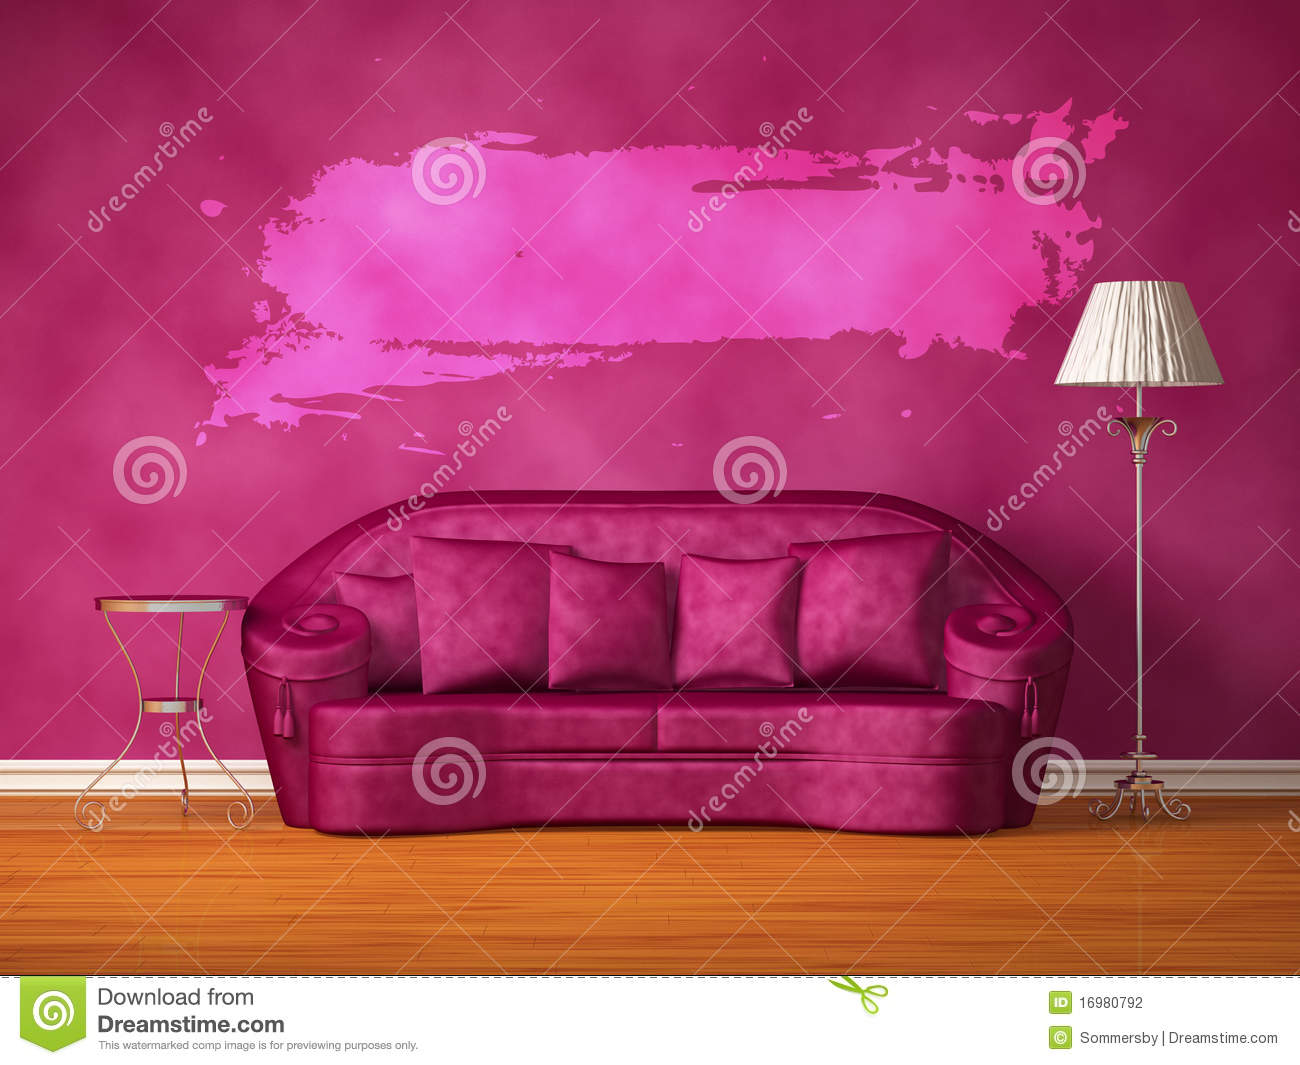 Purple couch with table, standard lamp and hole